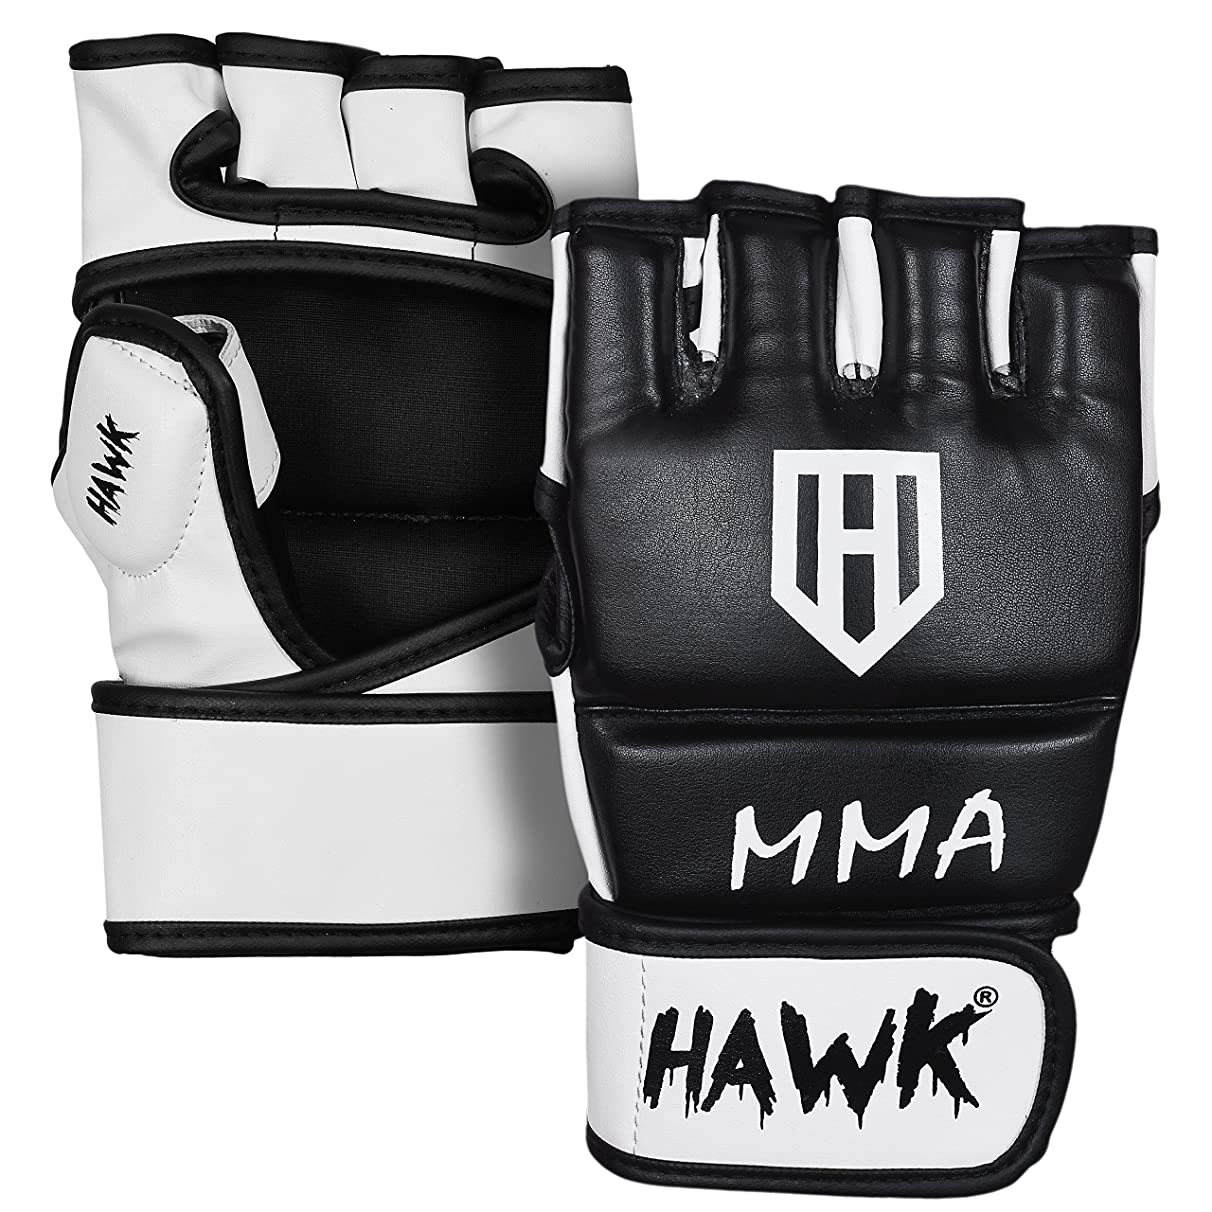 HAWK MMA Gloves Grappling Gloves Martial Arts Sparring Gloves Punching Bag Cage Fight Gloves Mitts UFC Combat Training Gloves